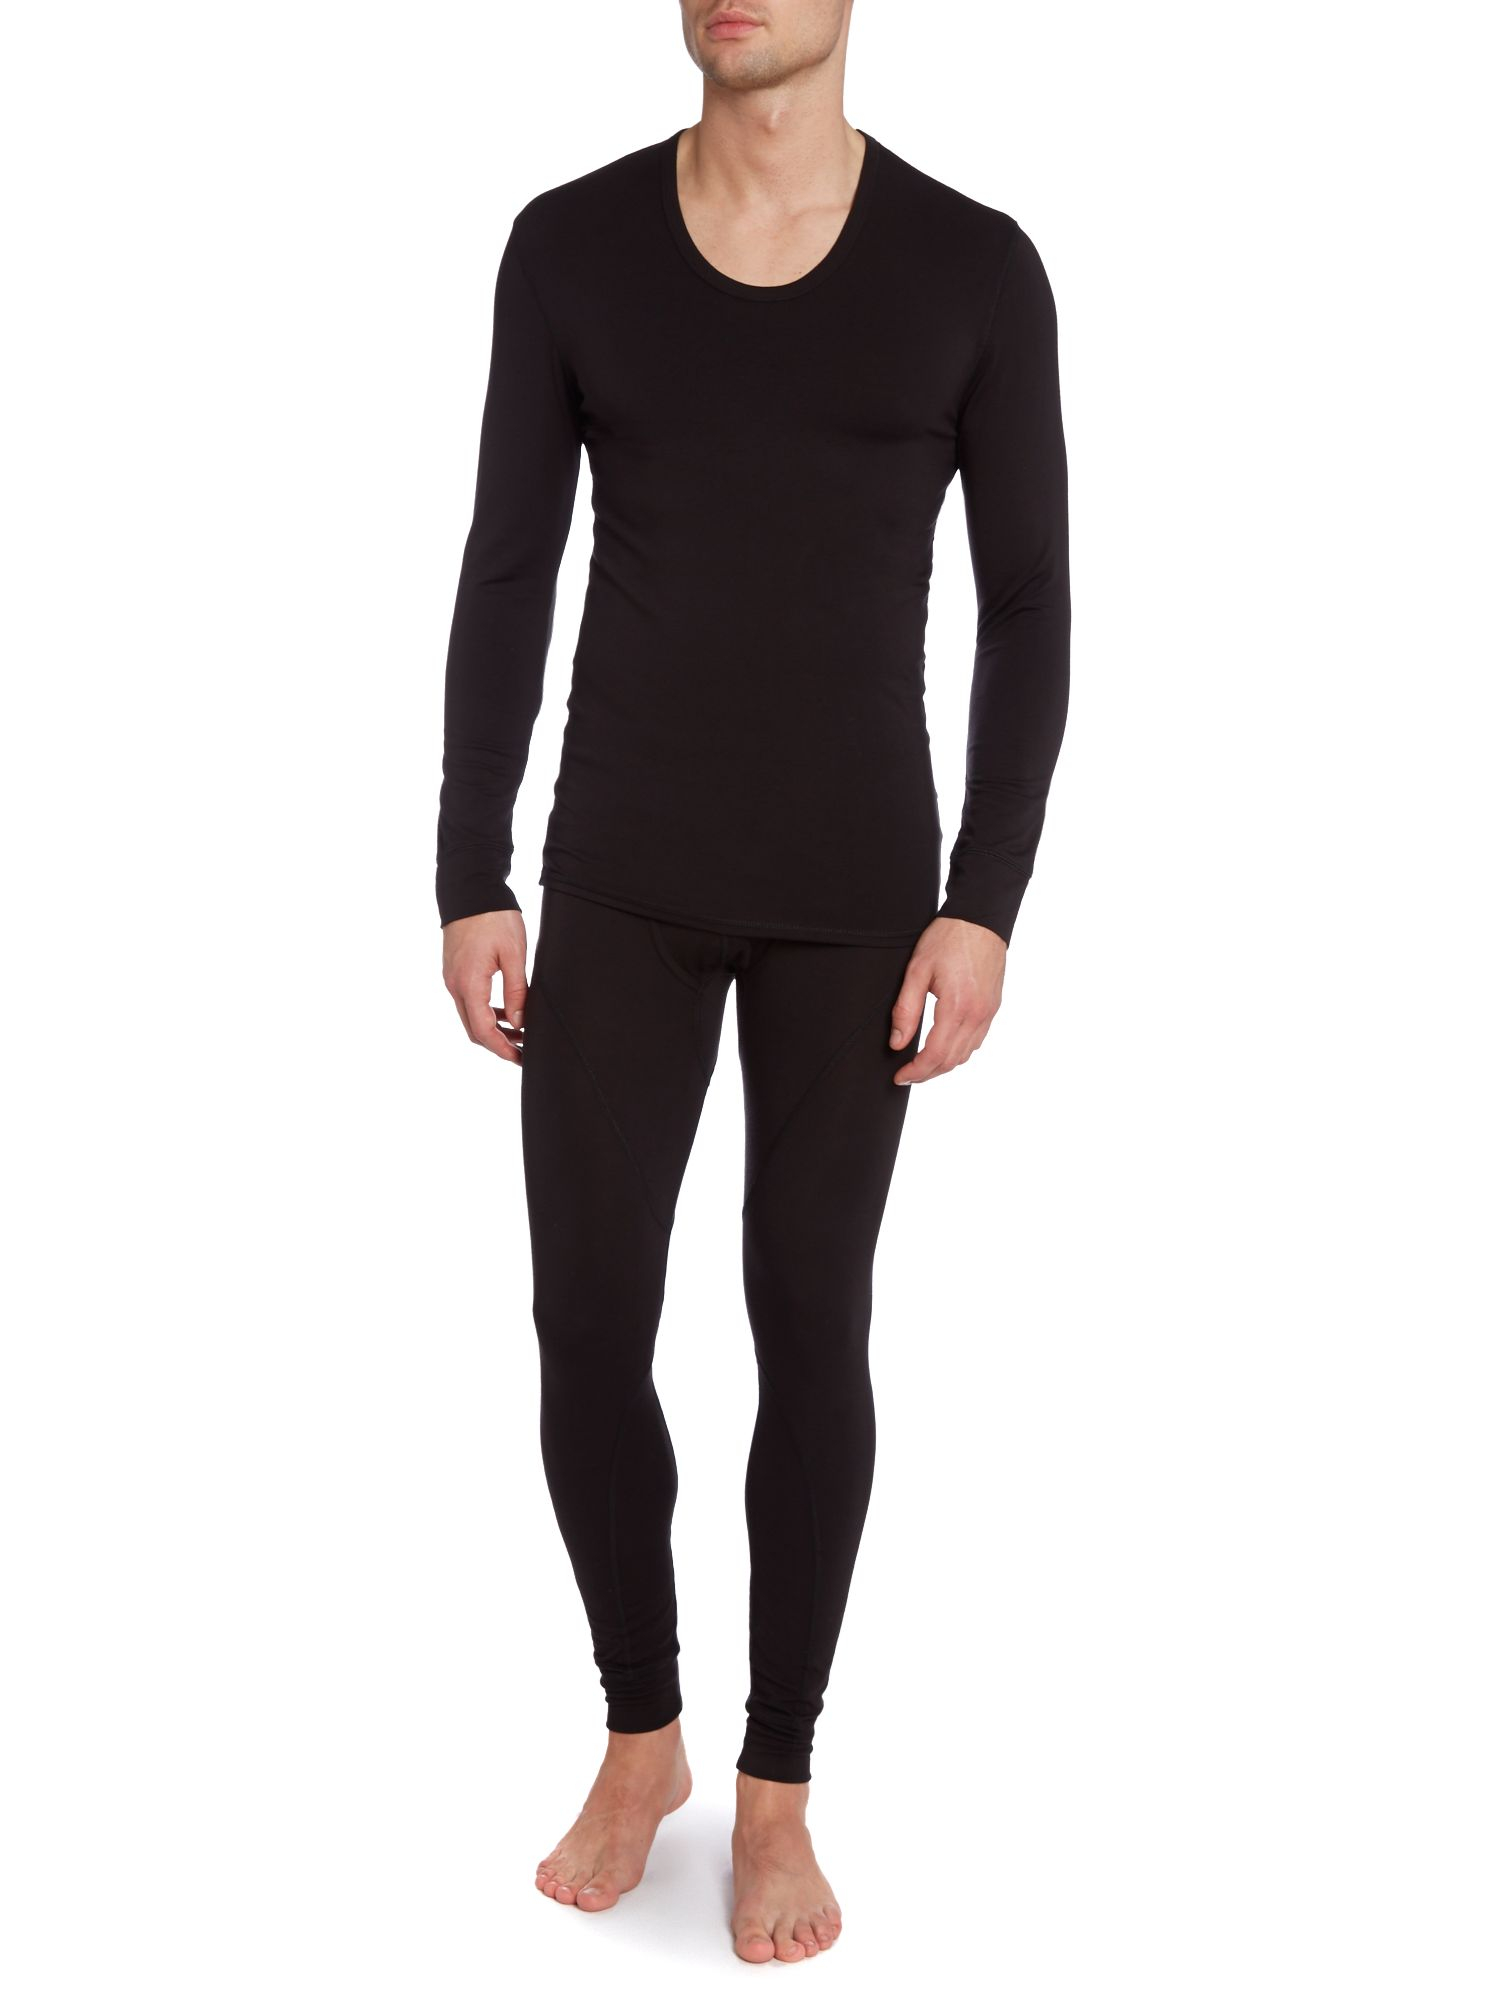 Lyst calvin klein thermal tshirt in black for men for Mens black thermal t shirts